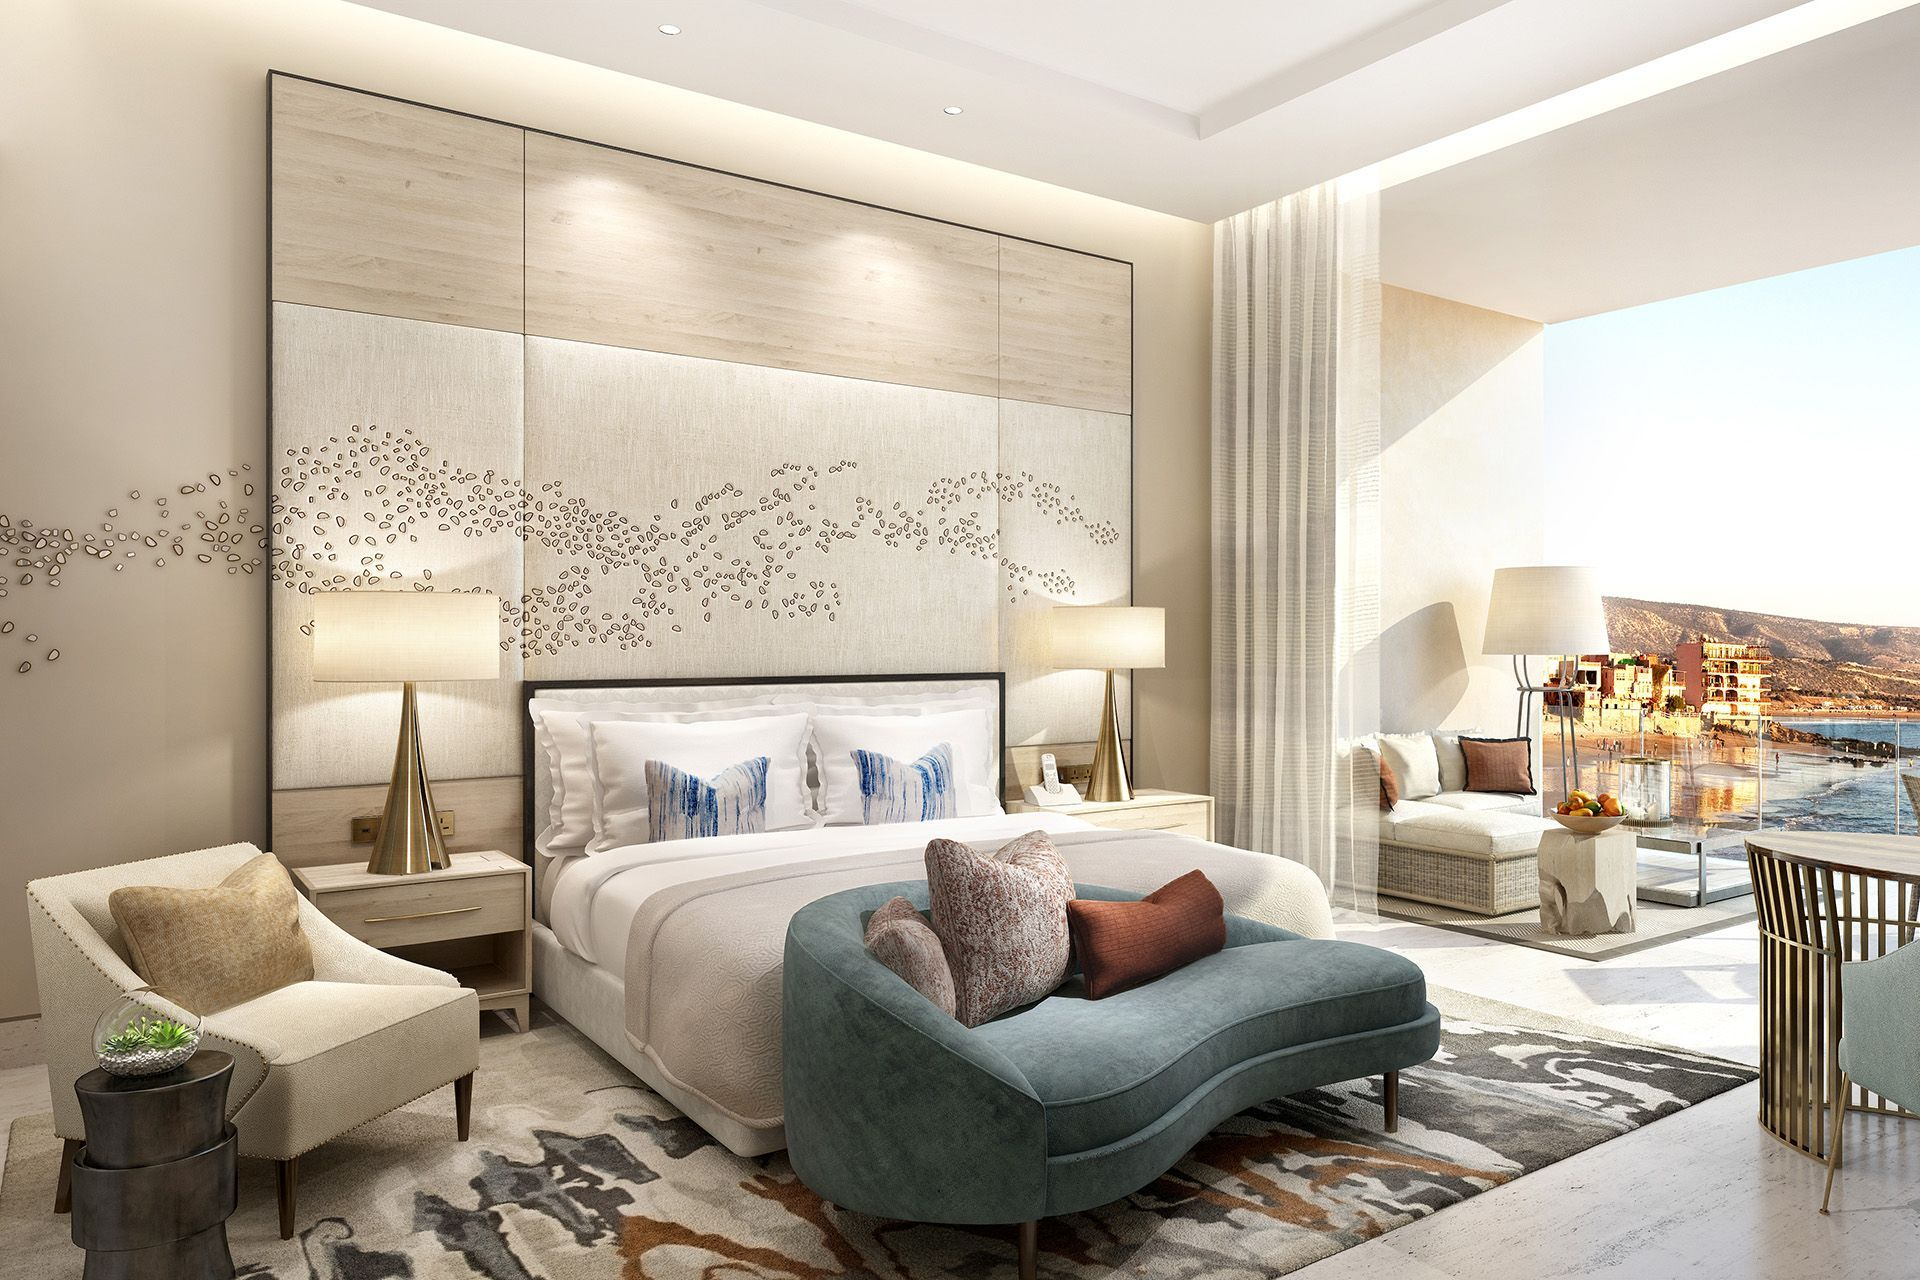 Four seasons taghazout interior designers wimberly for Interior design images for bedrooms